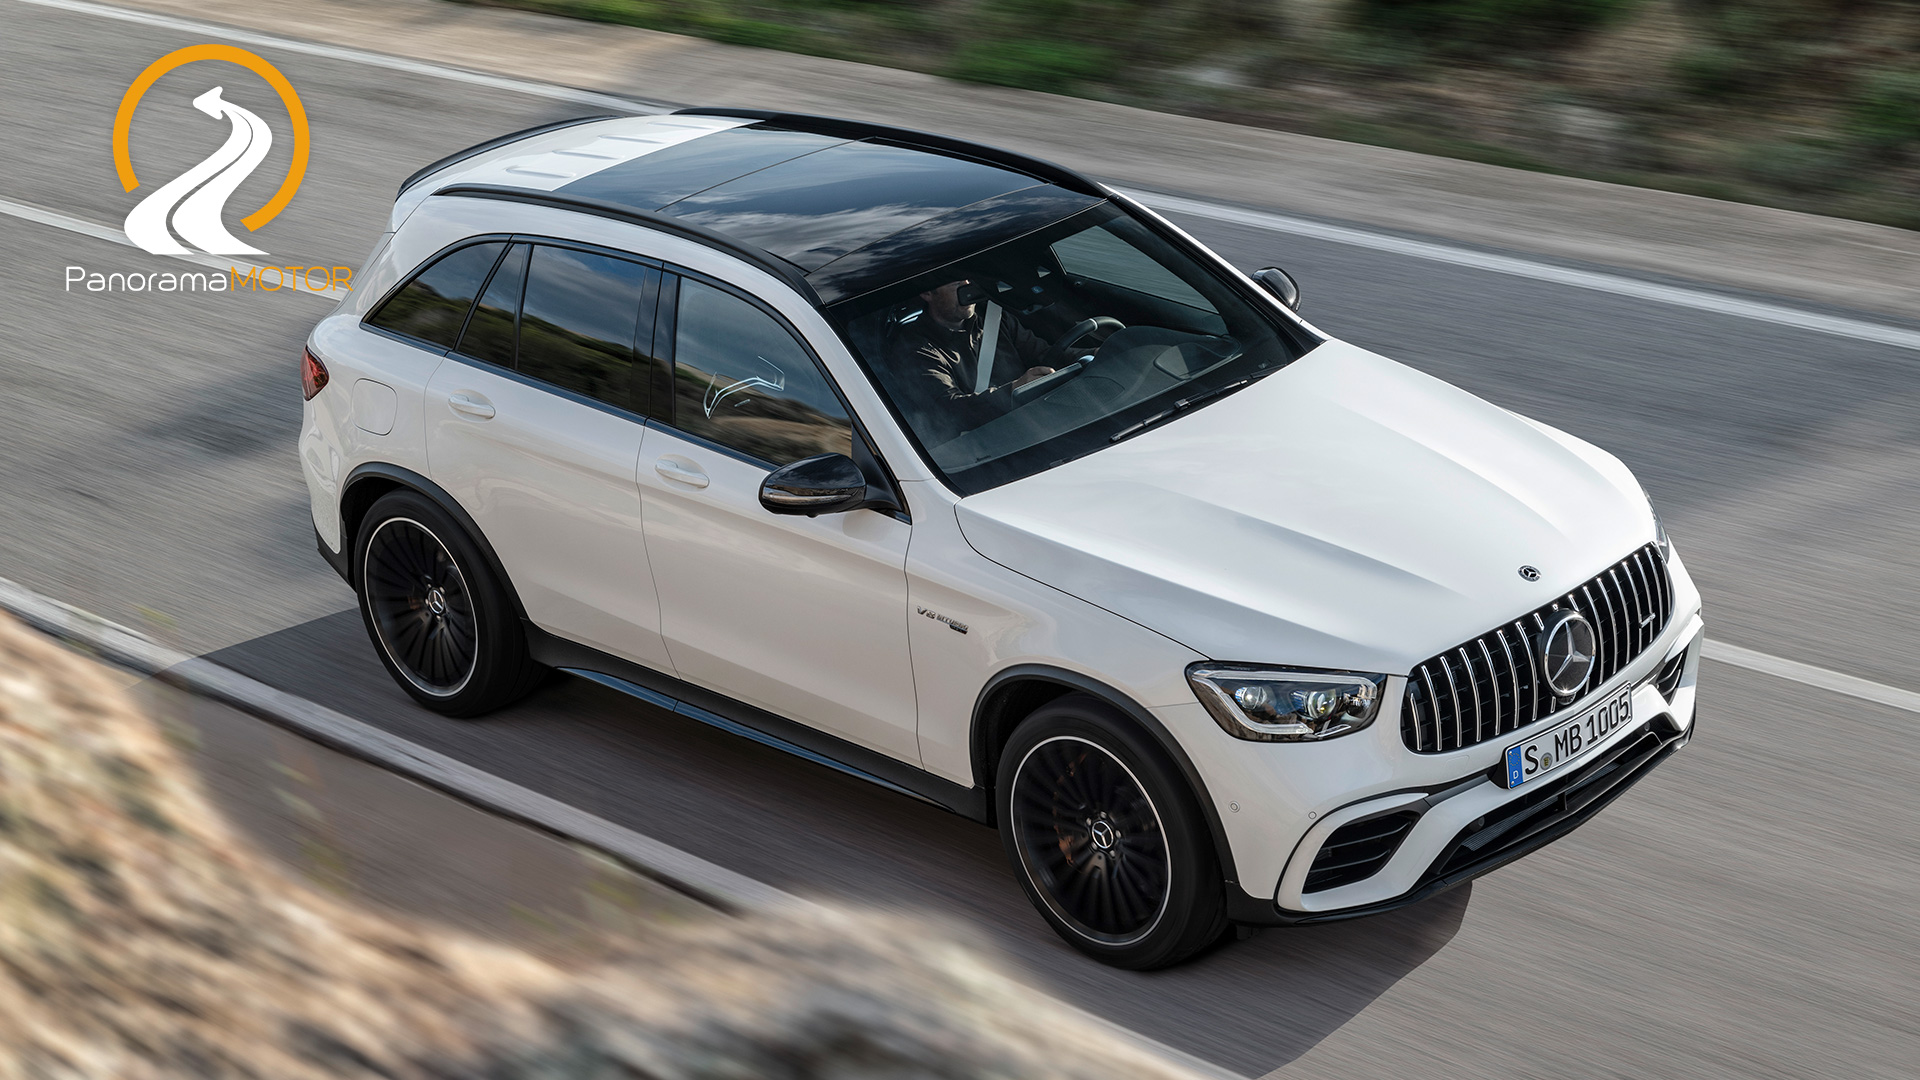 Mercedes-AMG GLC 63 4MATIC+ 2019